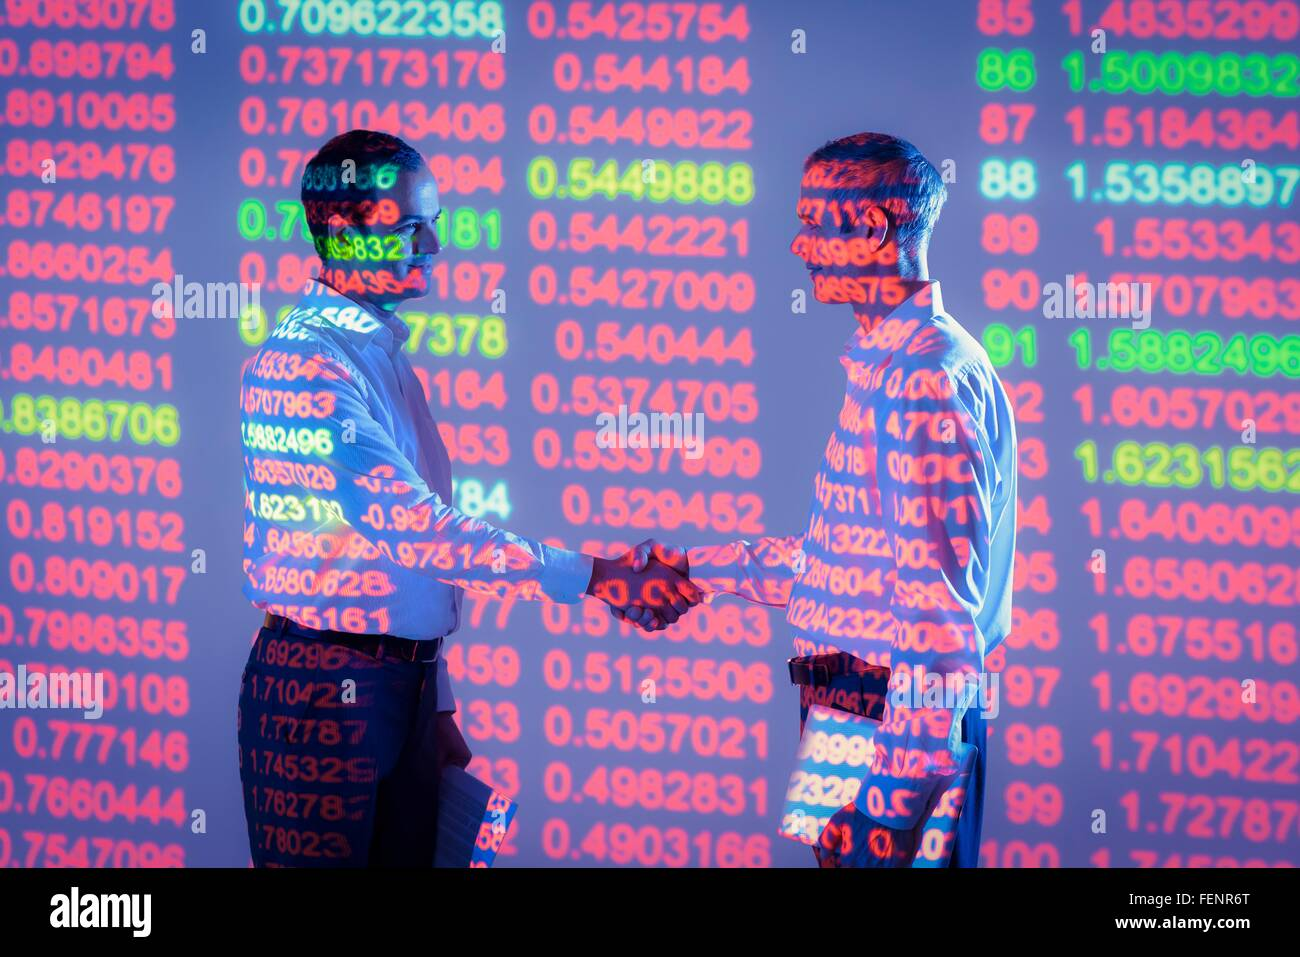 Businessmen shaking hands with projected graphical financial data - Stock Image